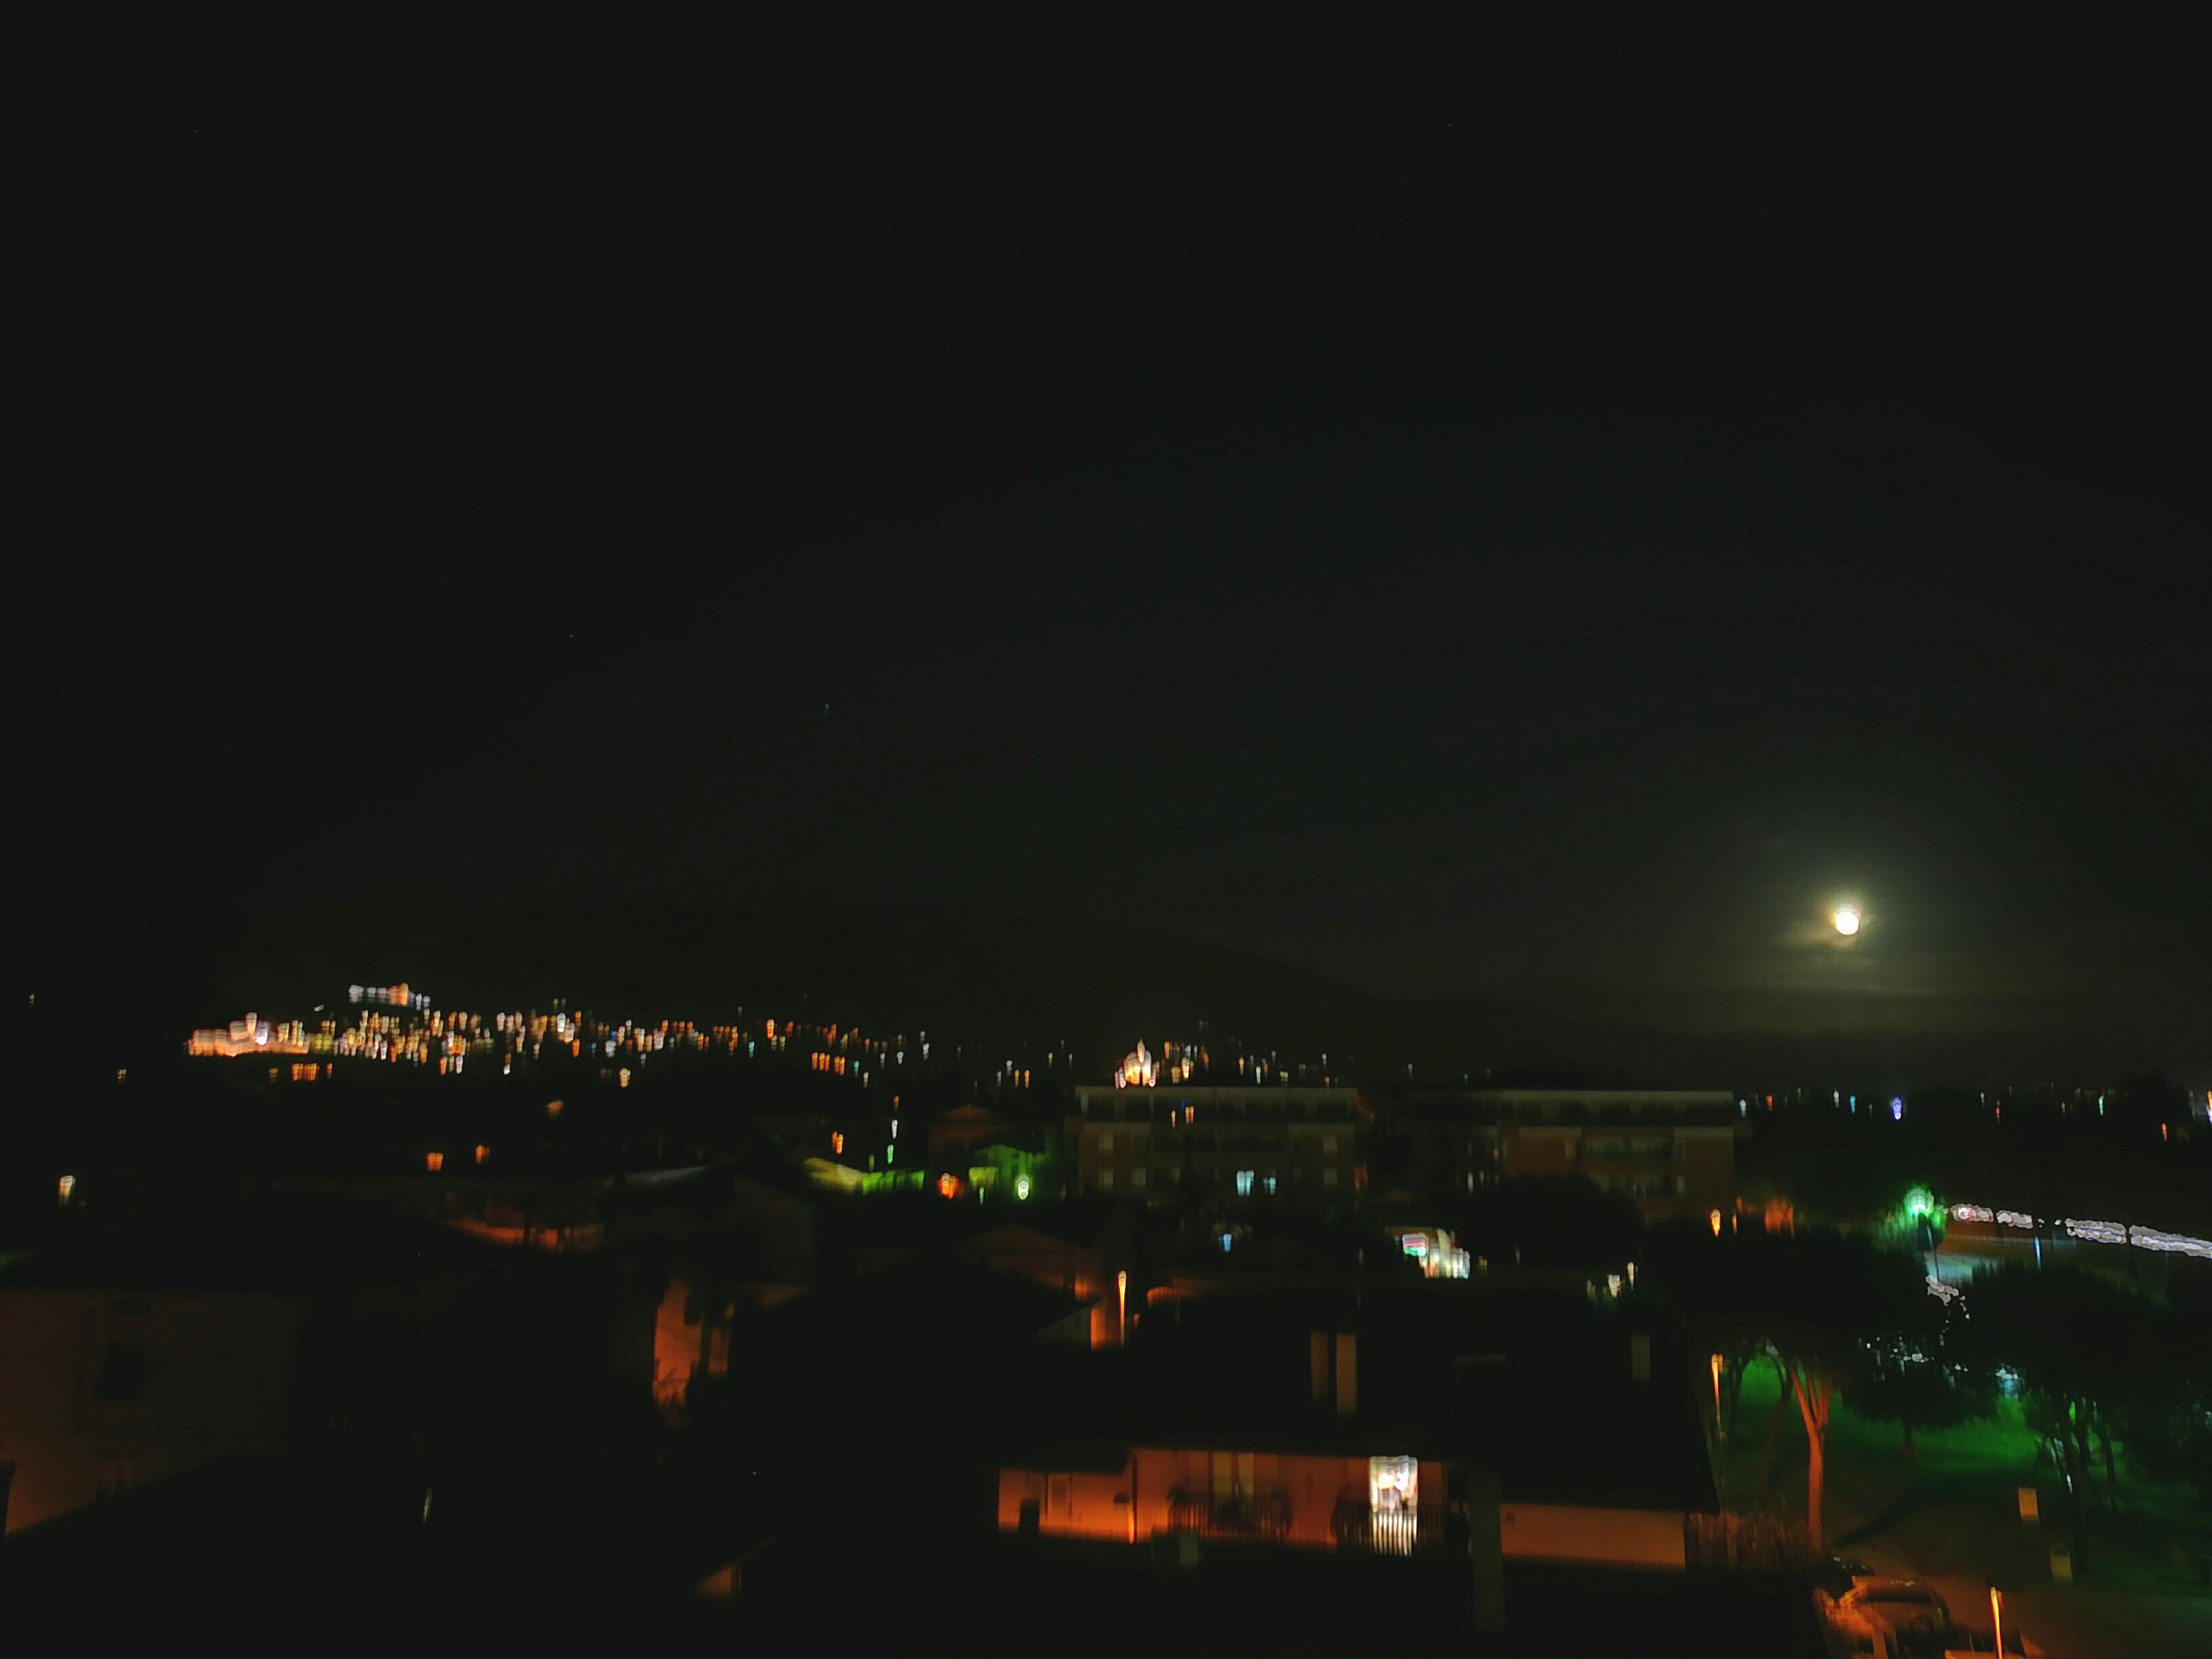 night, illuminated, building exterior, built structure, architecture, city, cityscape, dark, copy space, high angle view, sky, residential structure, residential building, residential district, clear sky, crowded, house, outdoors, city life, moon